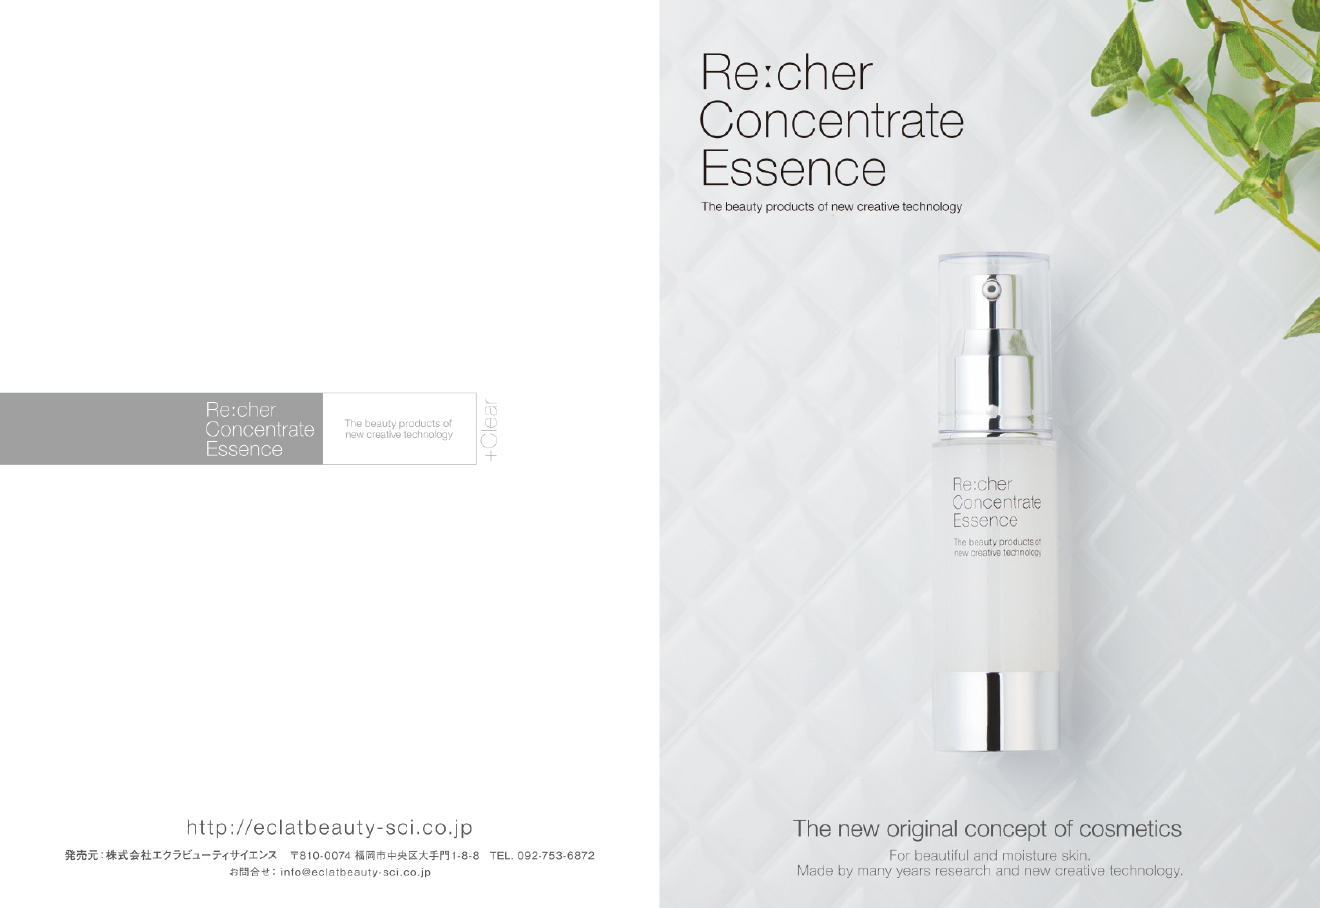 Recher Concentrate Essense